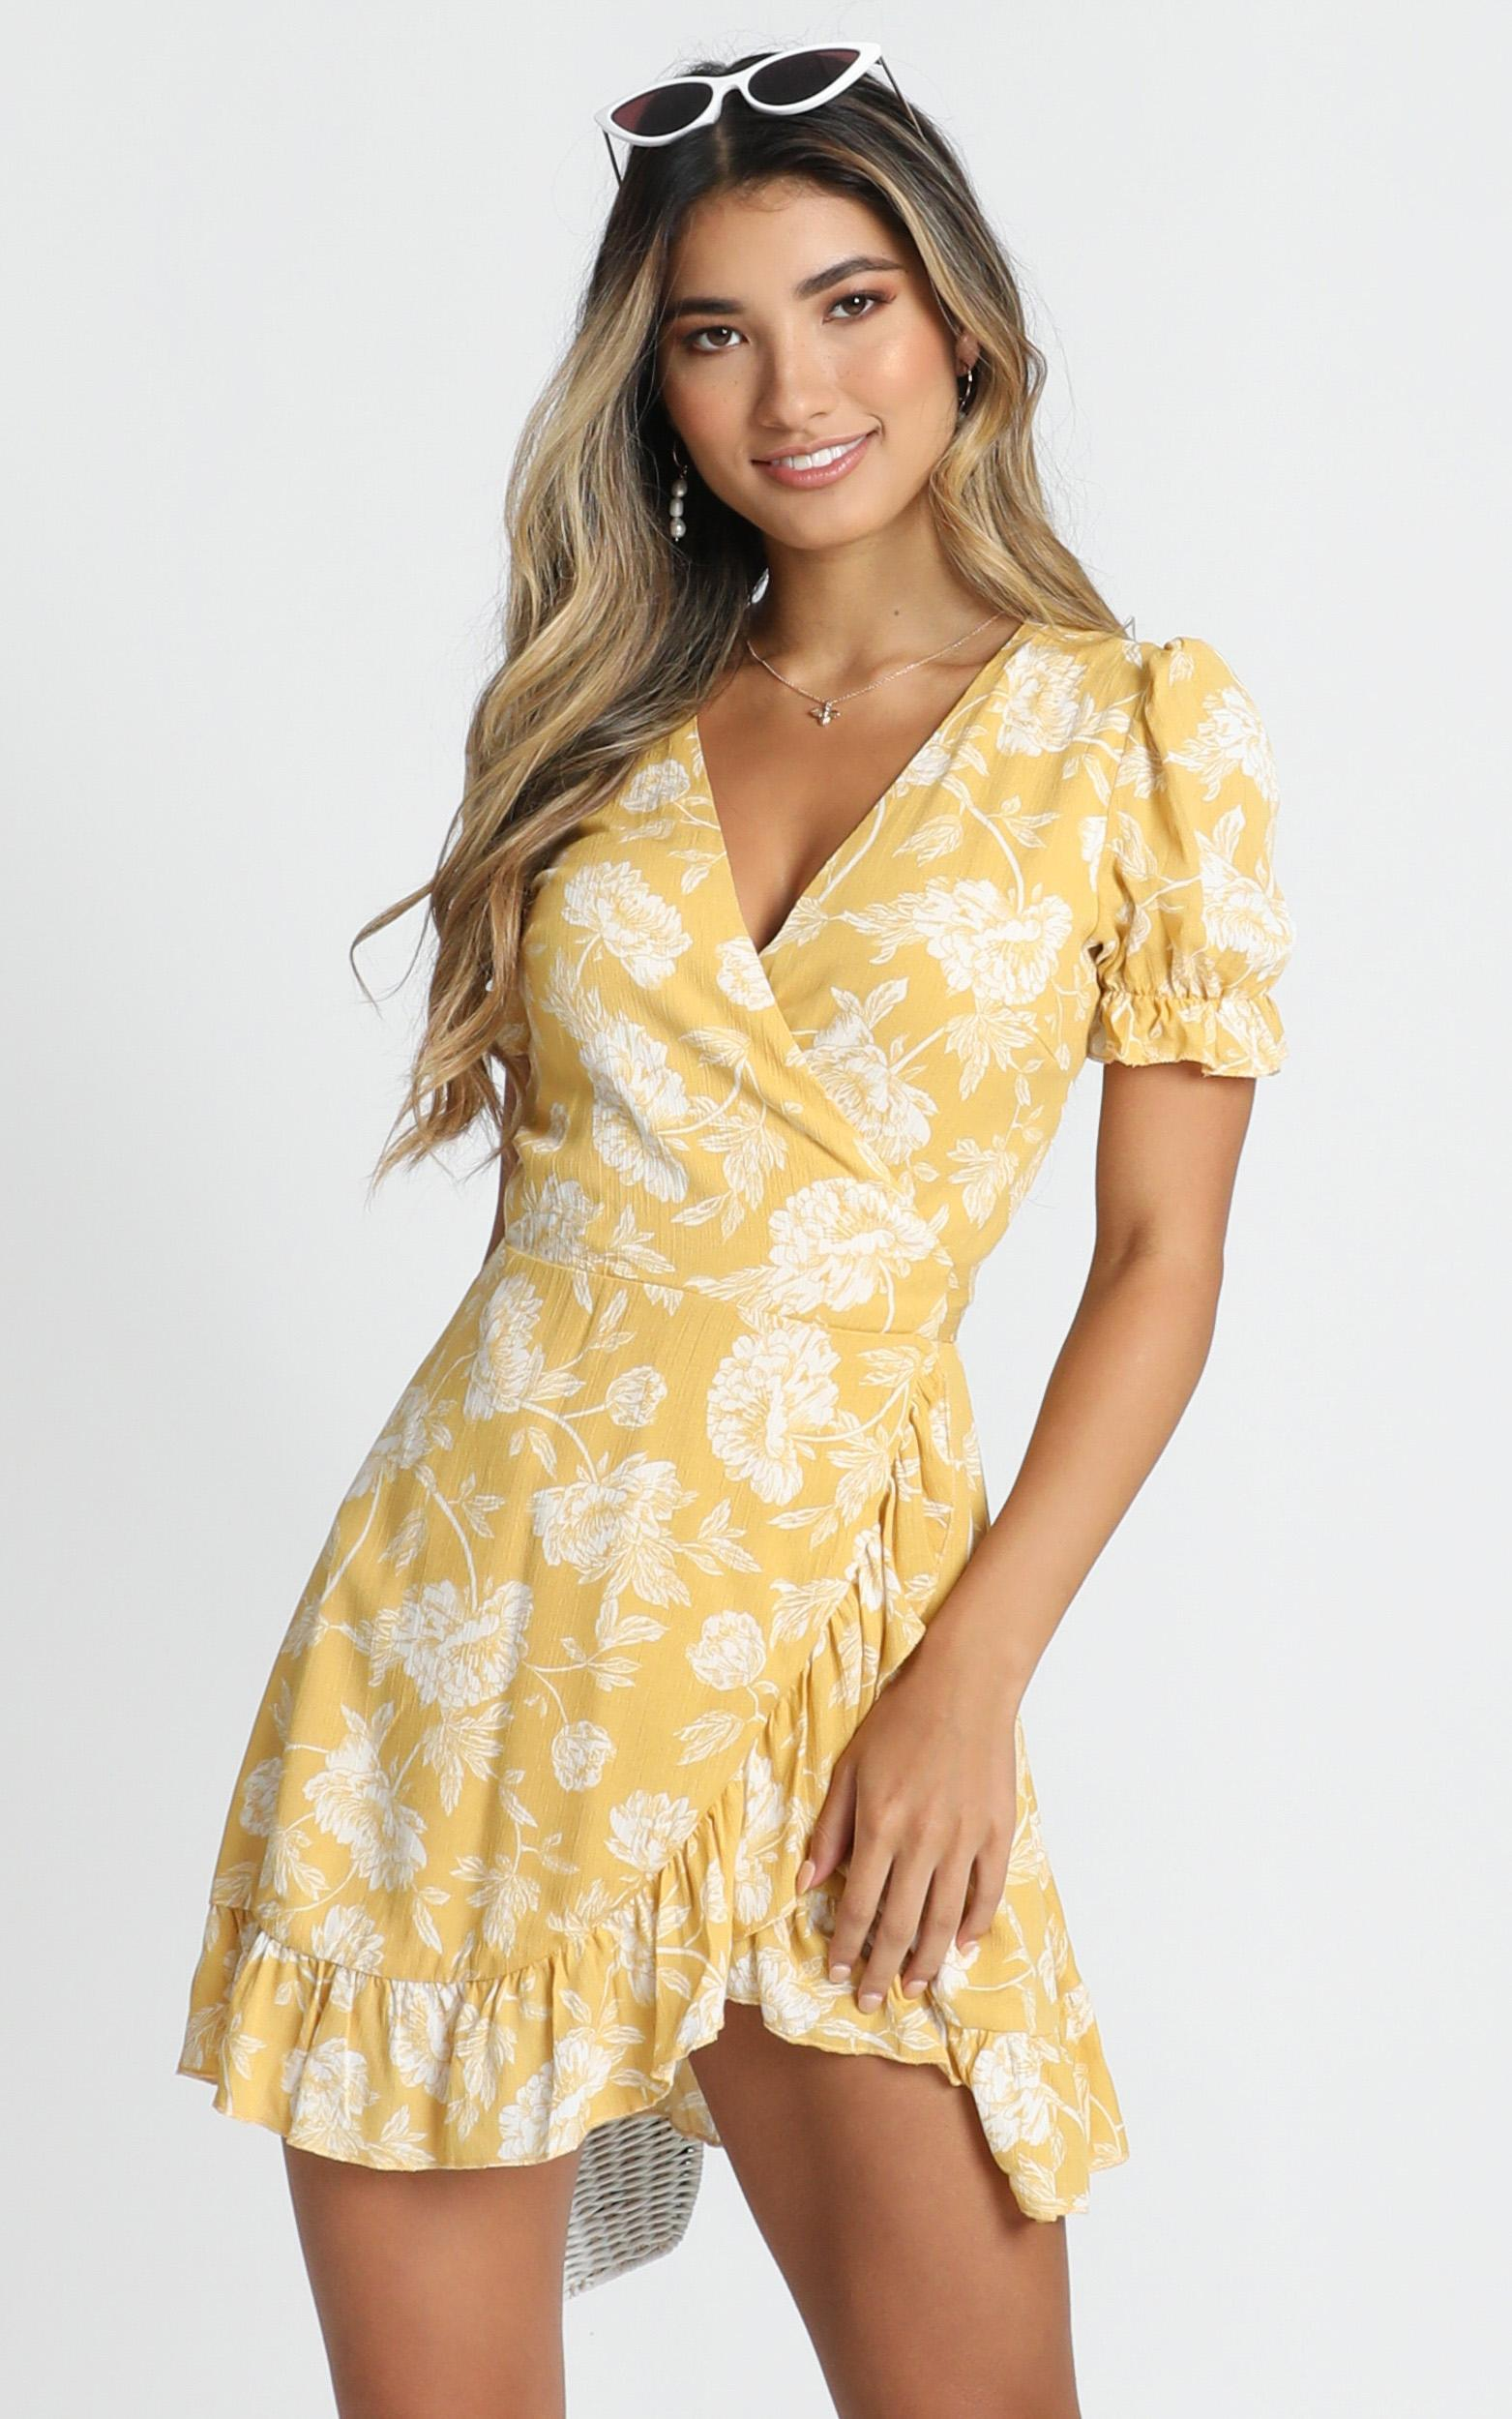 Seaside Views Dress In Yellow Floral, Yellow, hi-res image number null